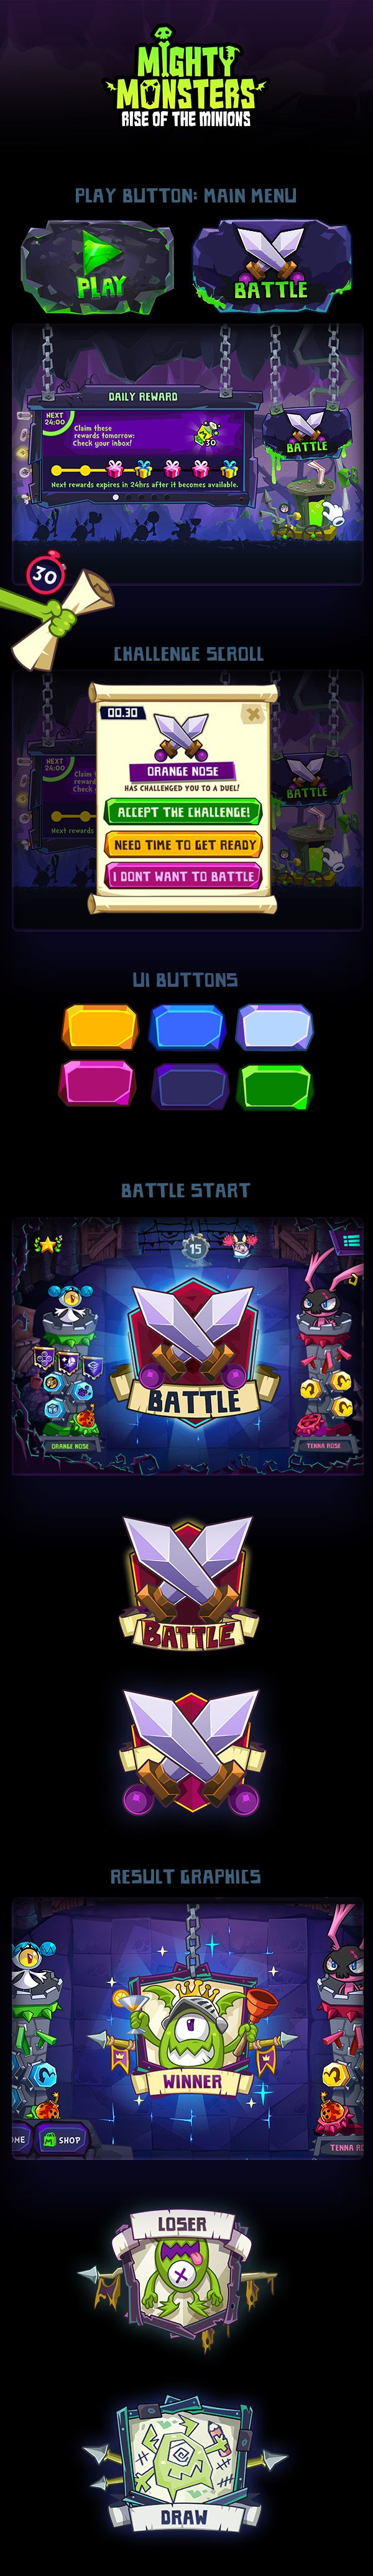 Mighty Monsters: Rise of the Minions iOS game. I helped a friend with the UI colours and attributed to those pages I have posted below.